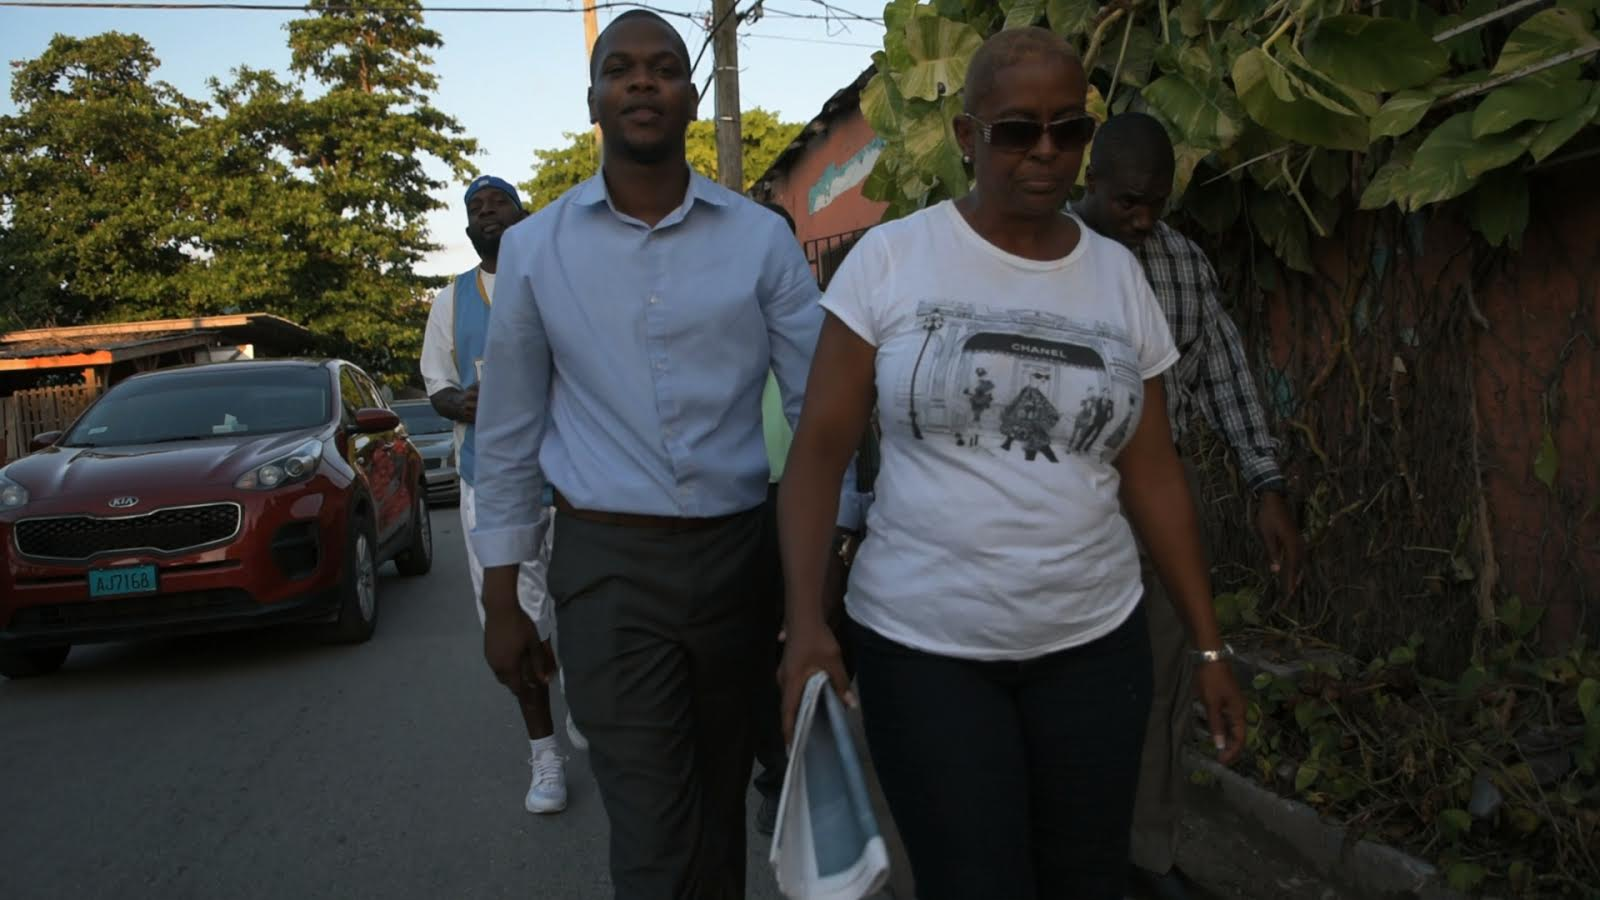 Robinson leads community walkabout after firing